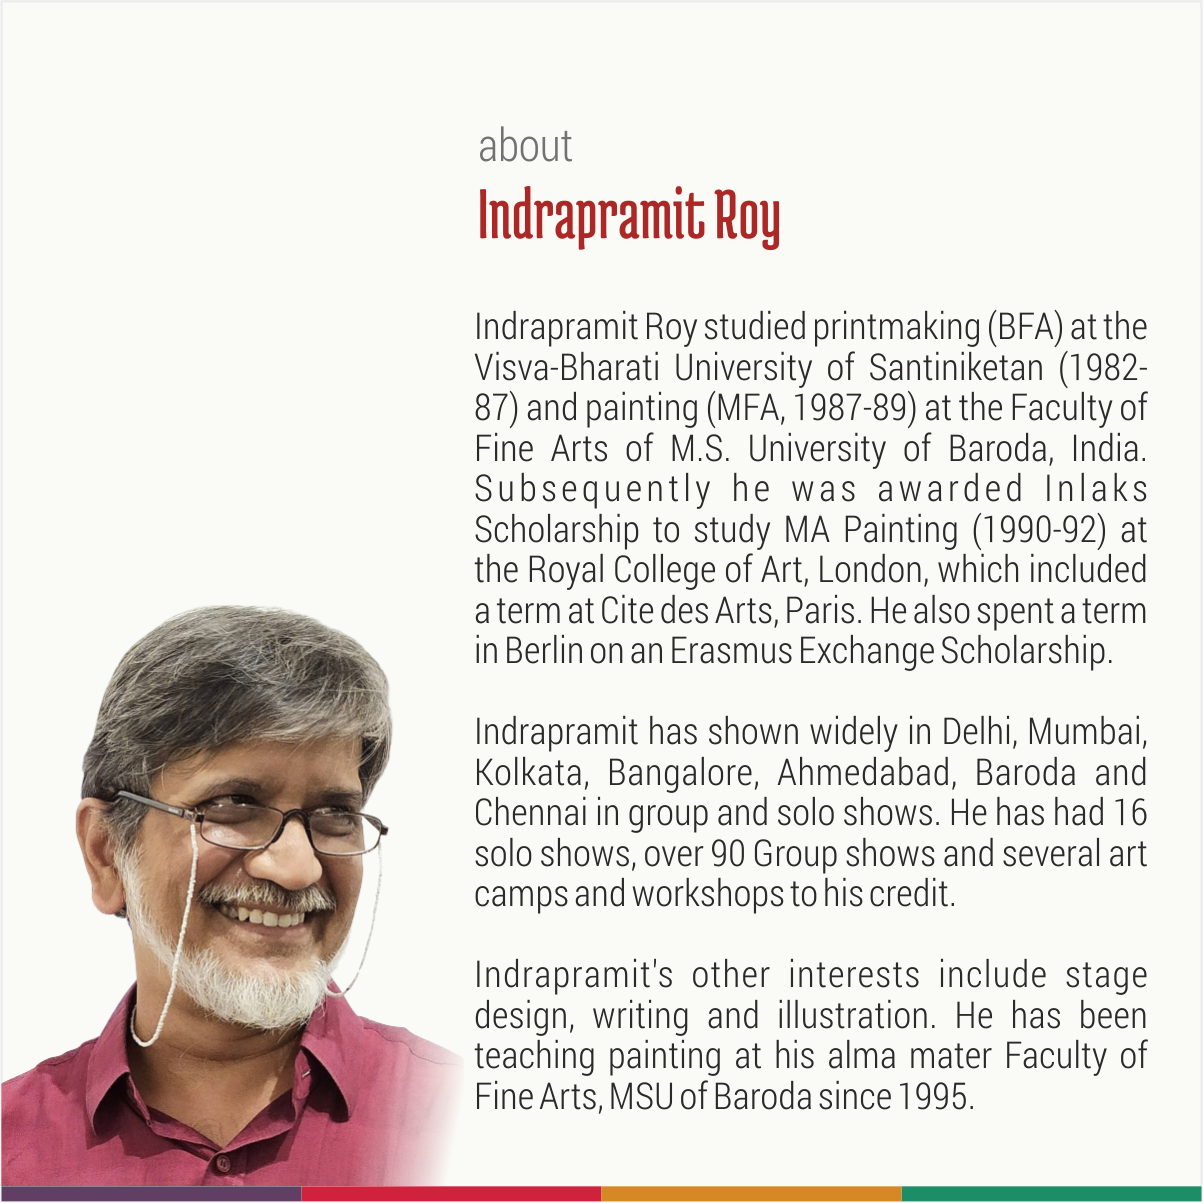 Talk by eminent artist Shri Indrapramit Roy1